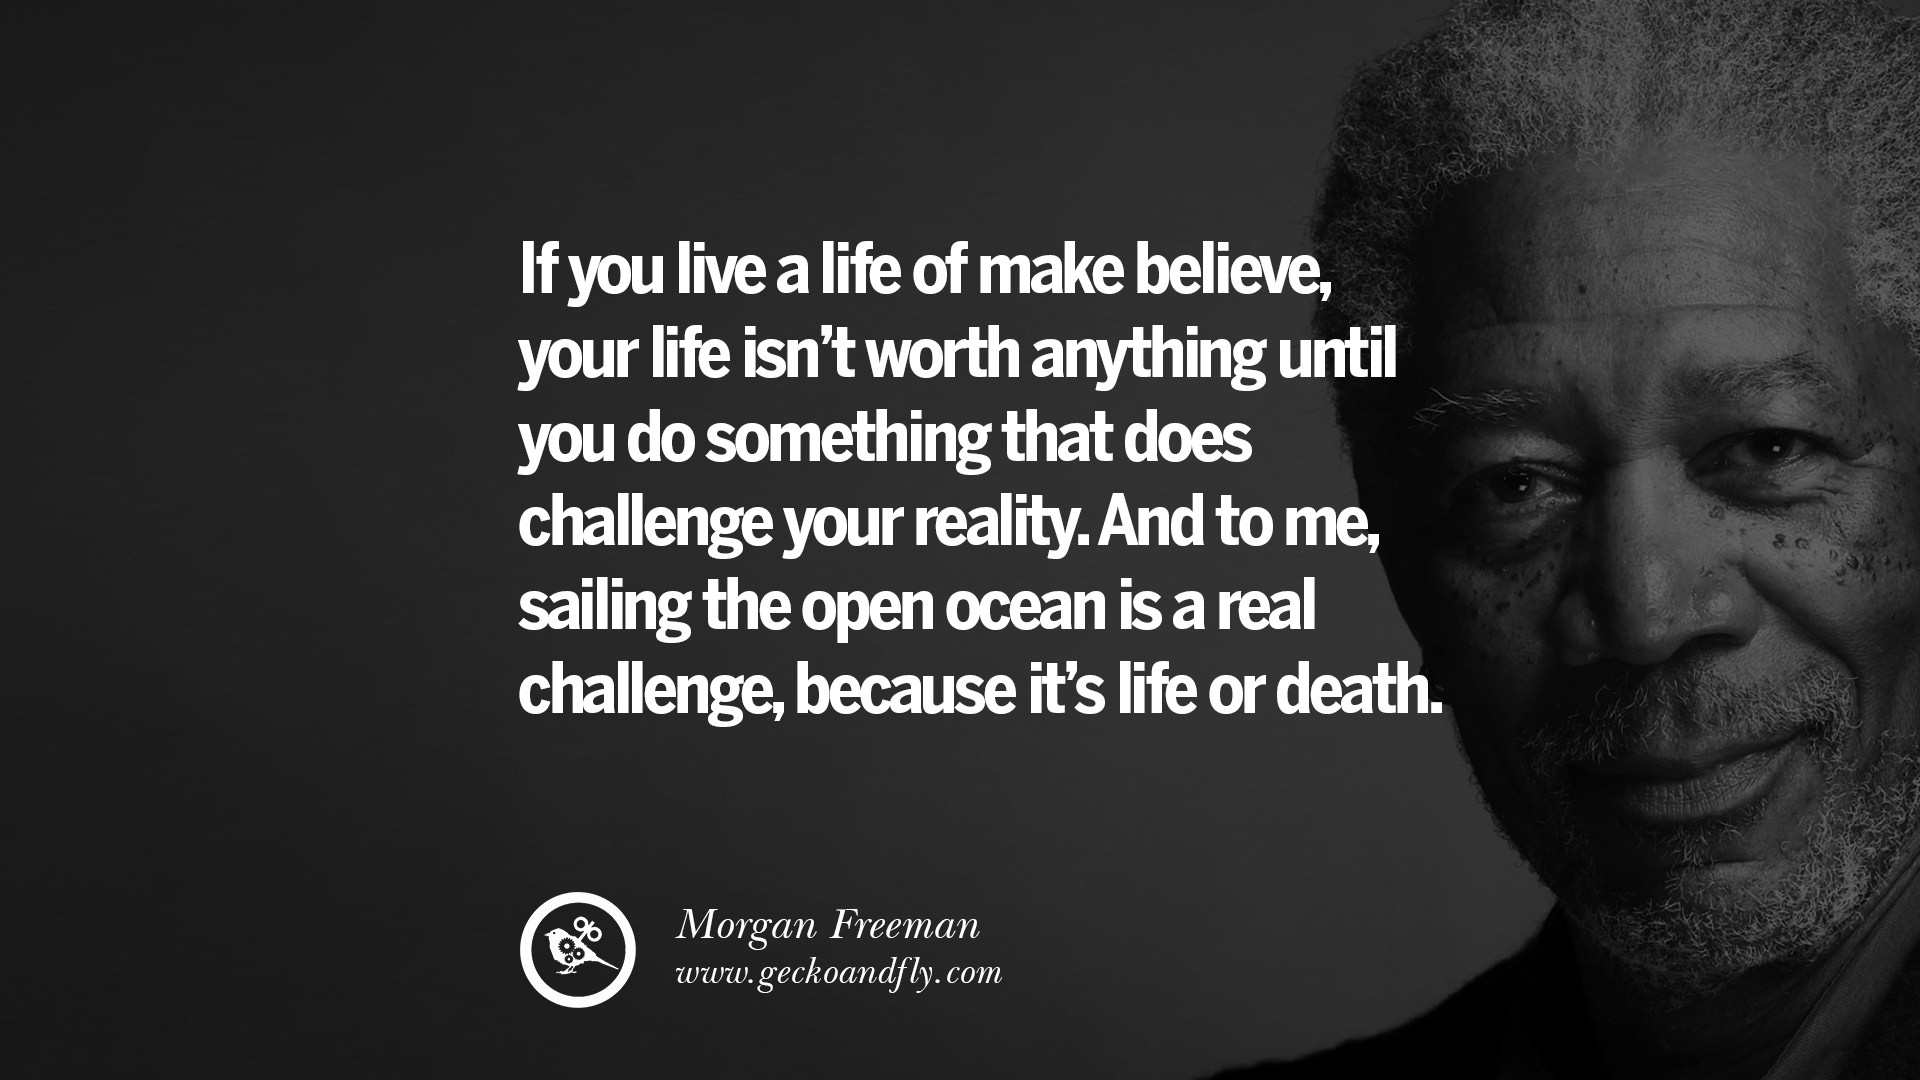 Morgan Freeman Quotes Dead Died Die Death If You Live A Life Of Make Believe